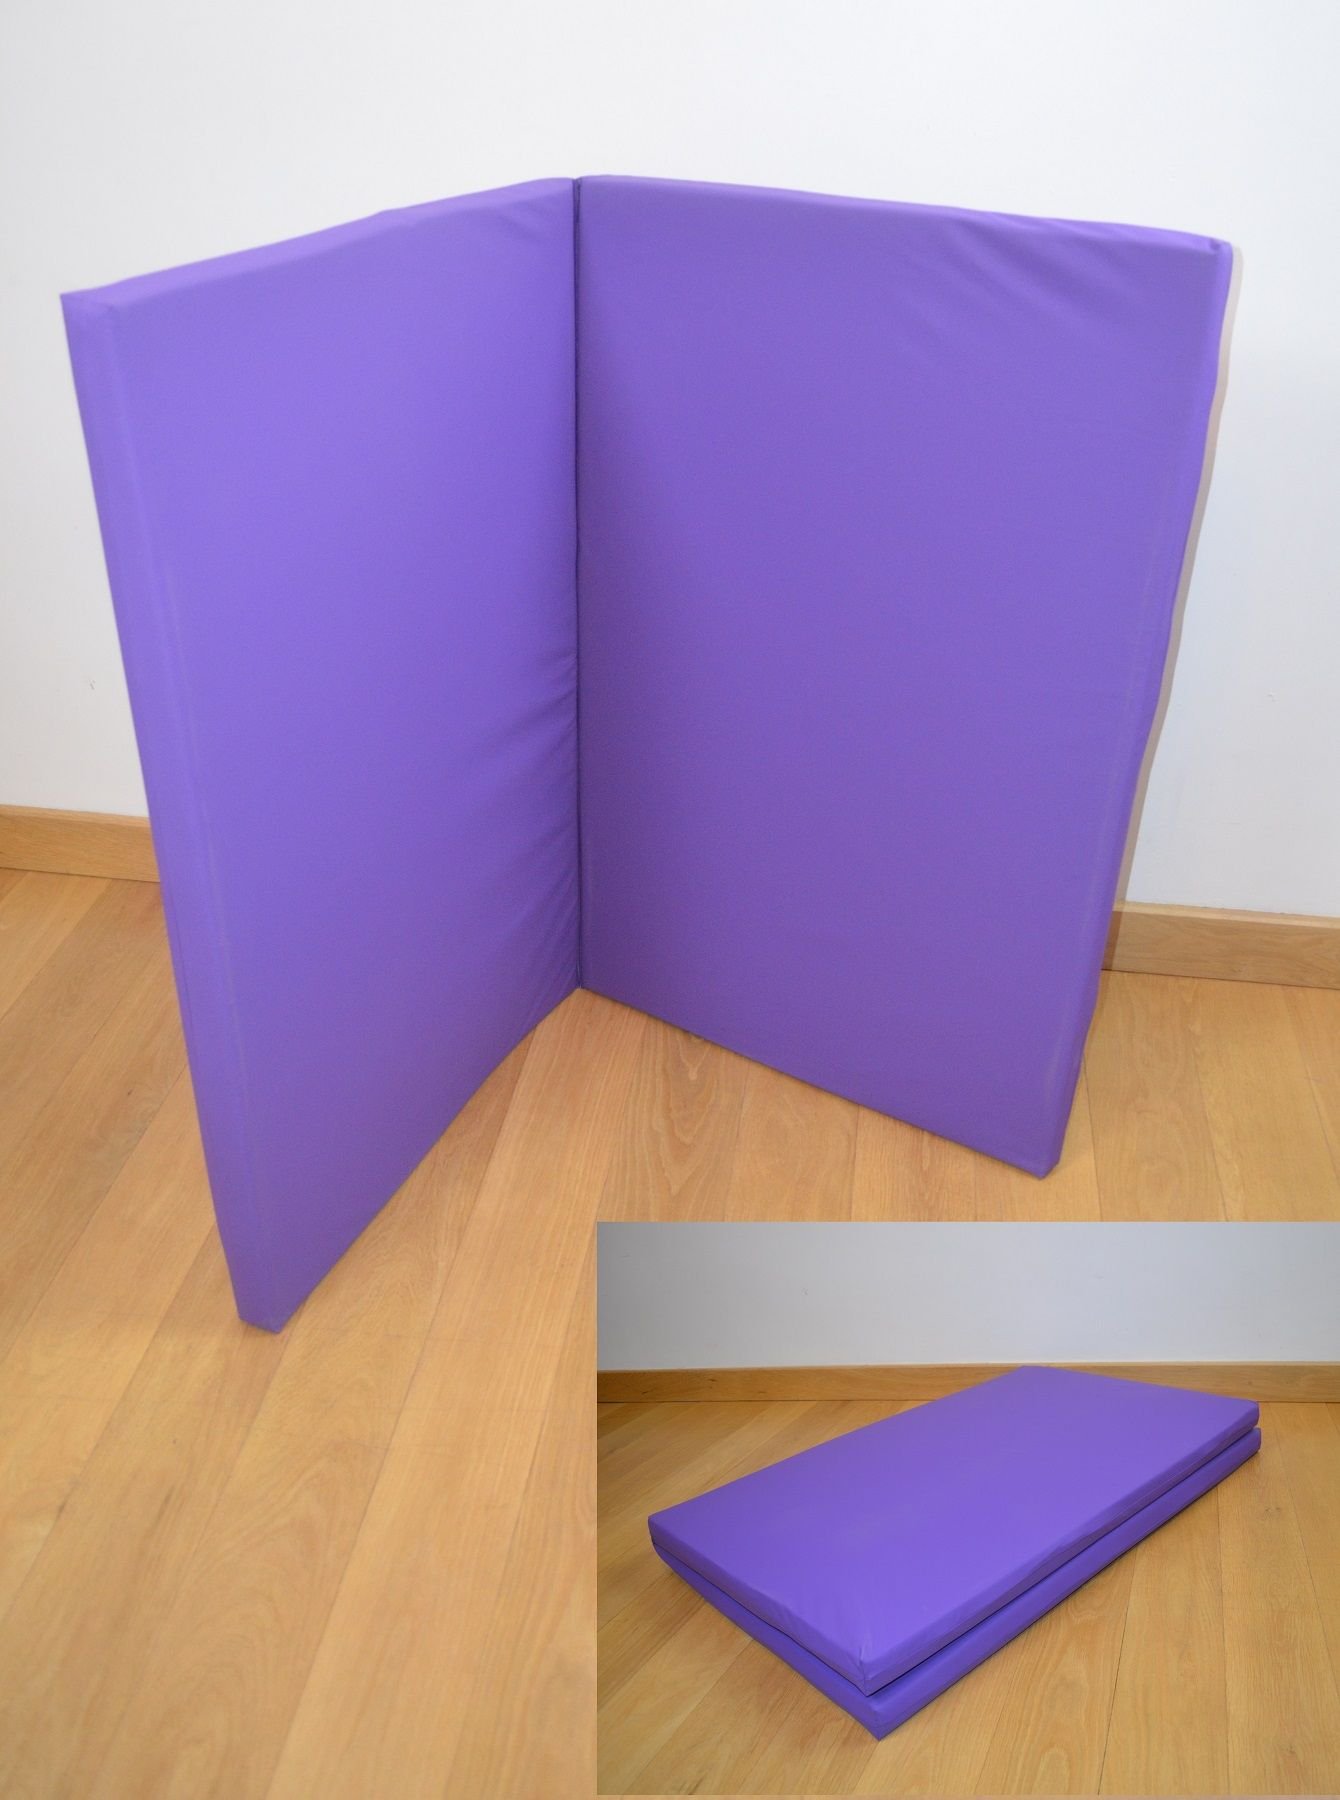 Folding Therapy Floor Mat is easy to take between venues